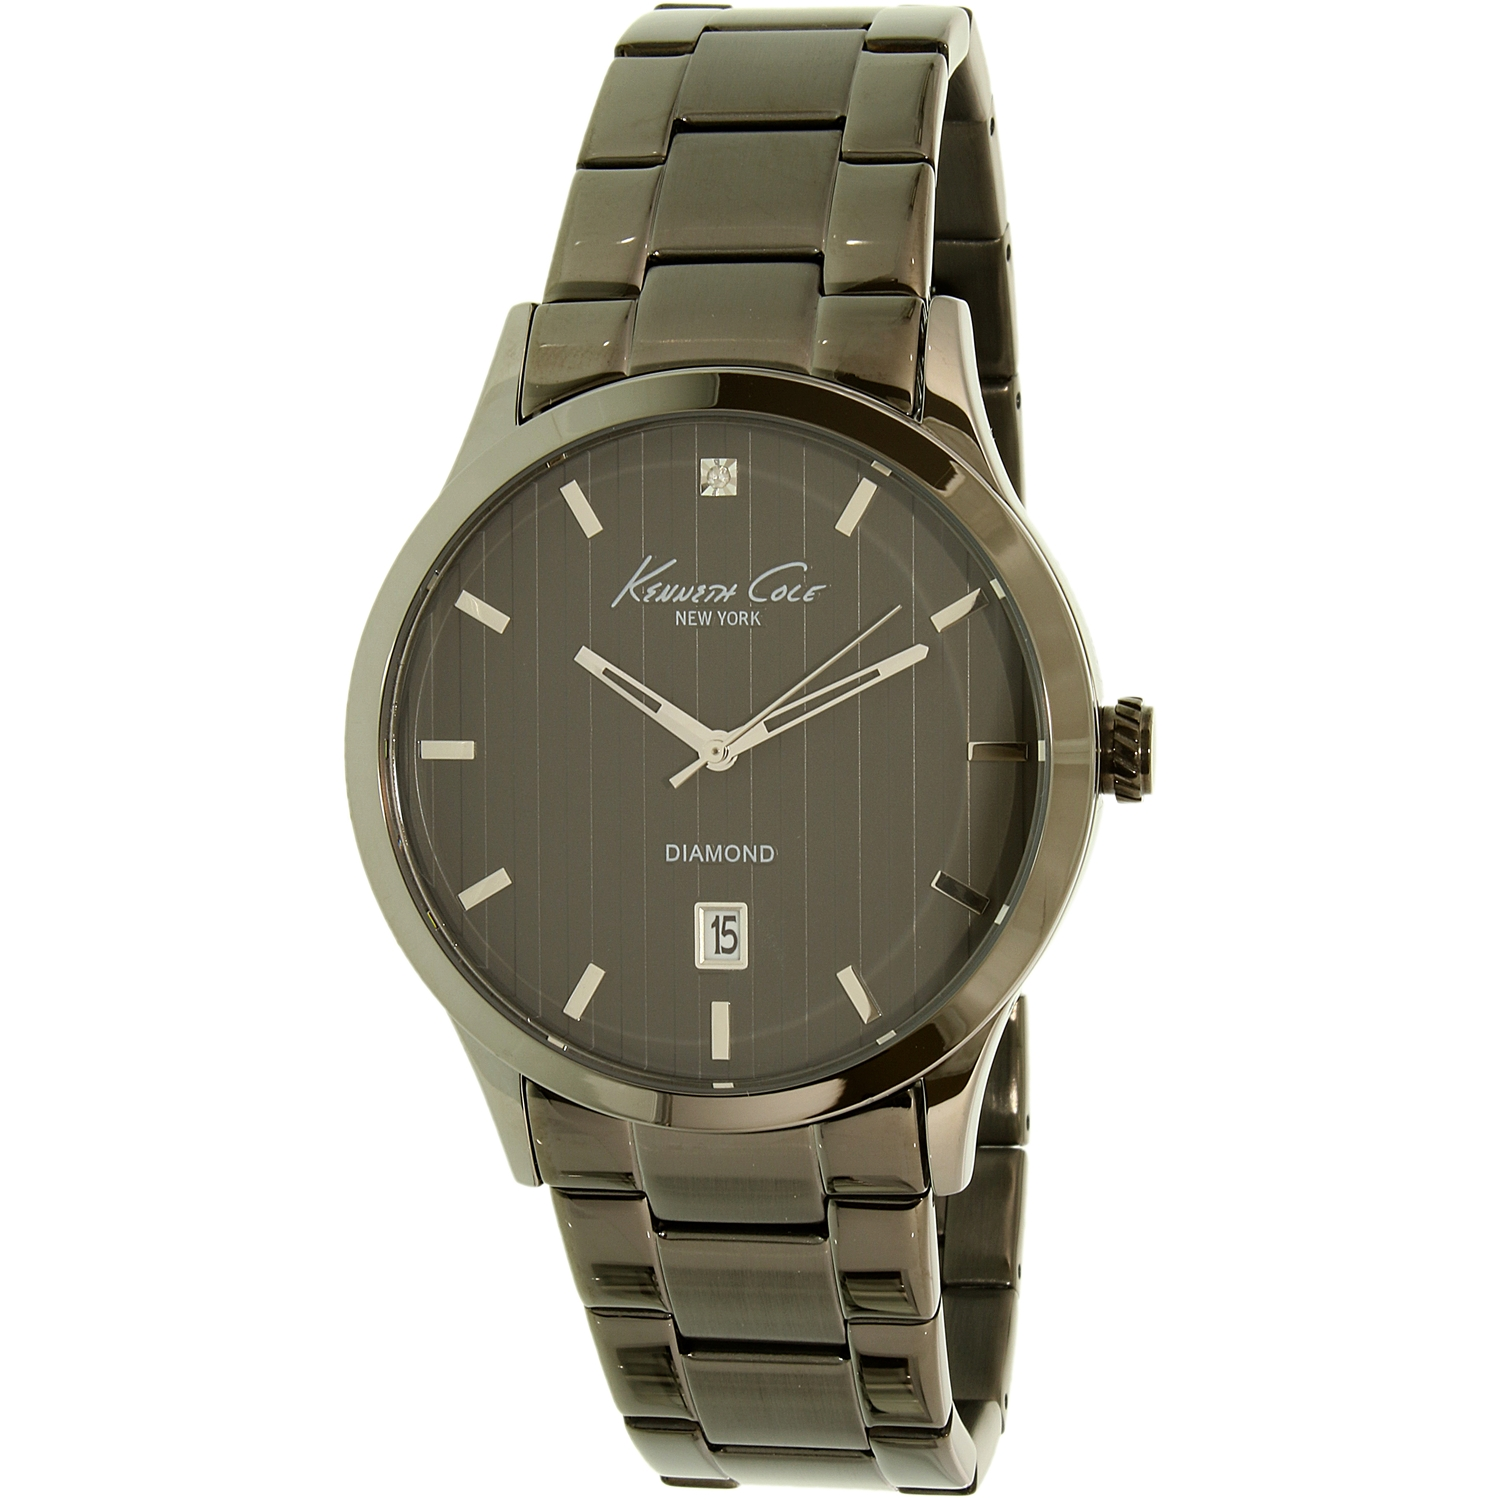 Kenneth Cole Men's New York 10021097 Gunmetal Stainless-Steel Quartz Dress Watch